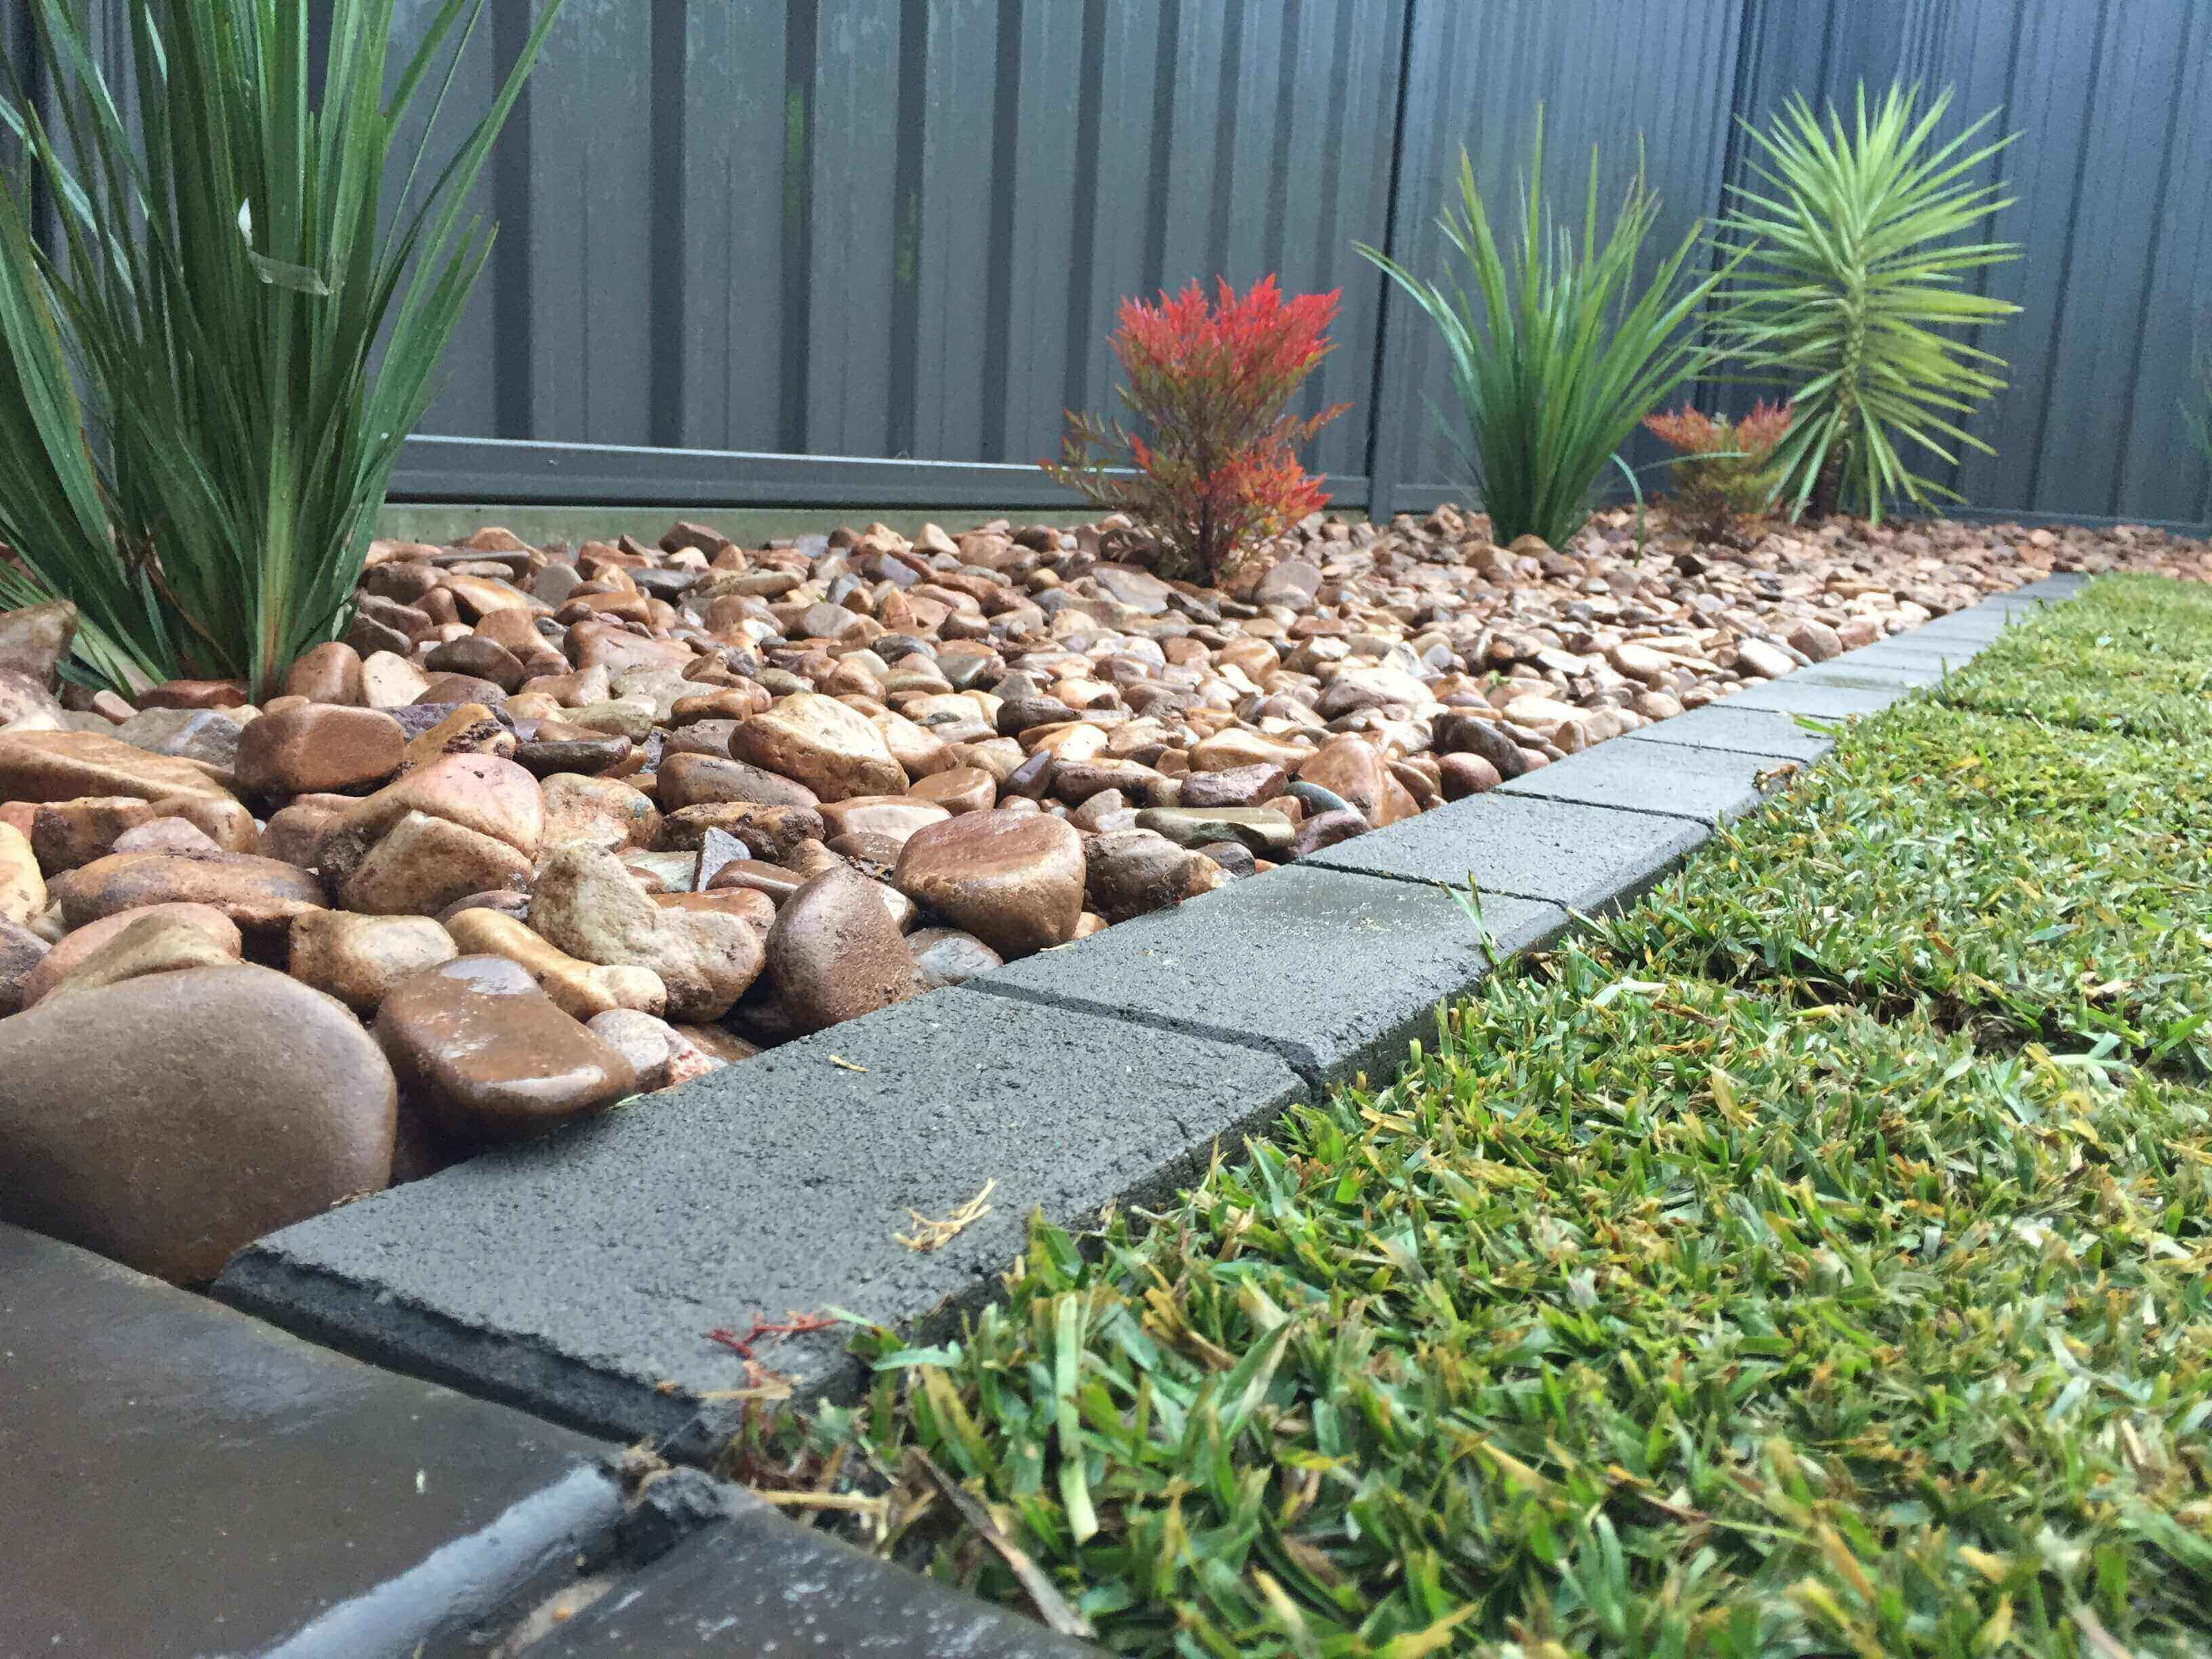 North Gate - Creating a plant bed decked with stones and a walking concrete pavement in our client's backyard